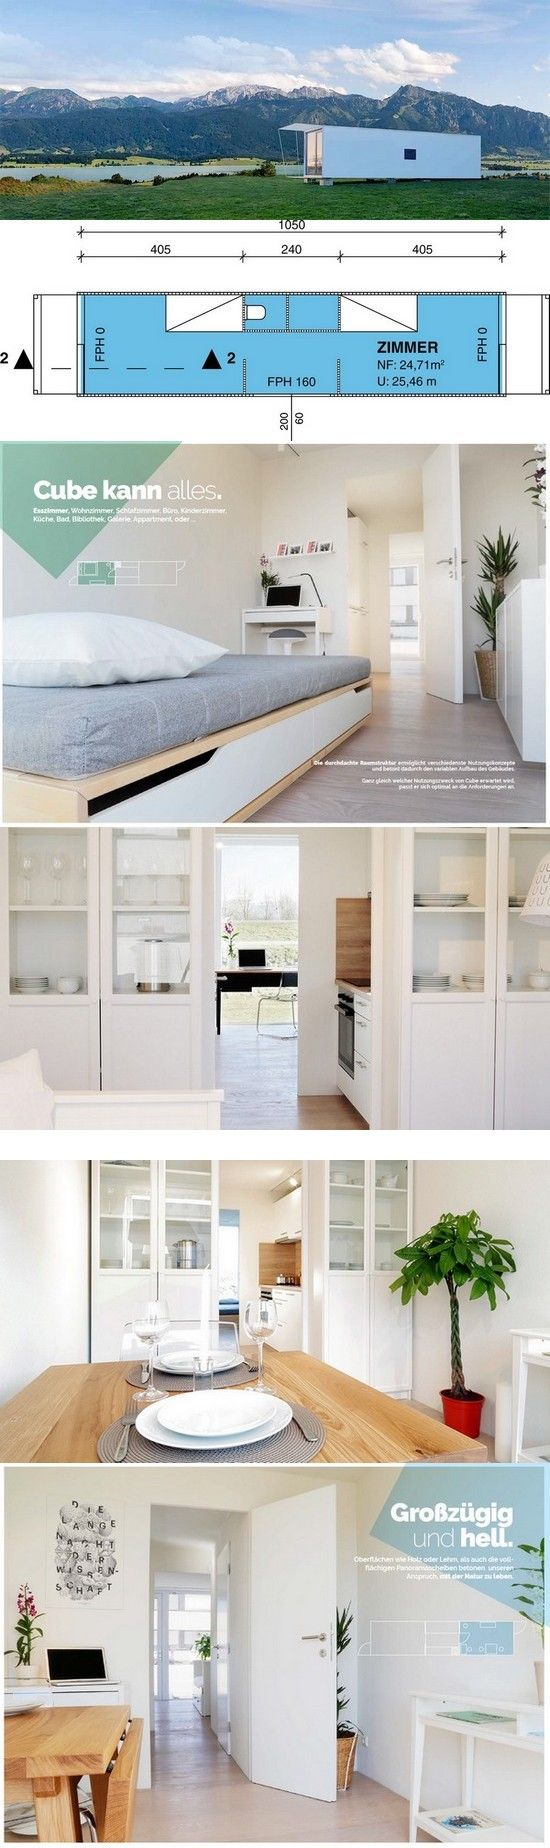 6678 best deutsche auf pinterest images on pinterest diys counseling and germany. Black Bedroom Furniture Sets. Home Design Ideas